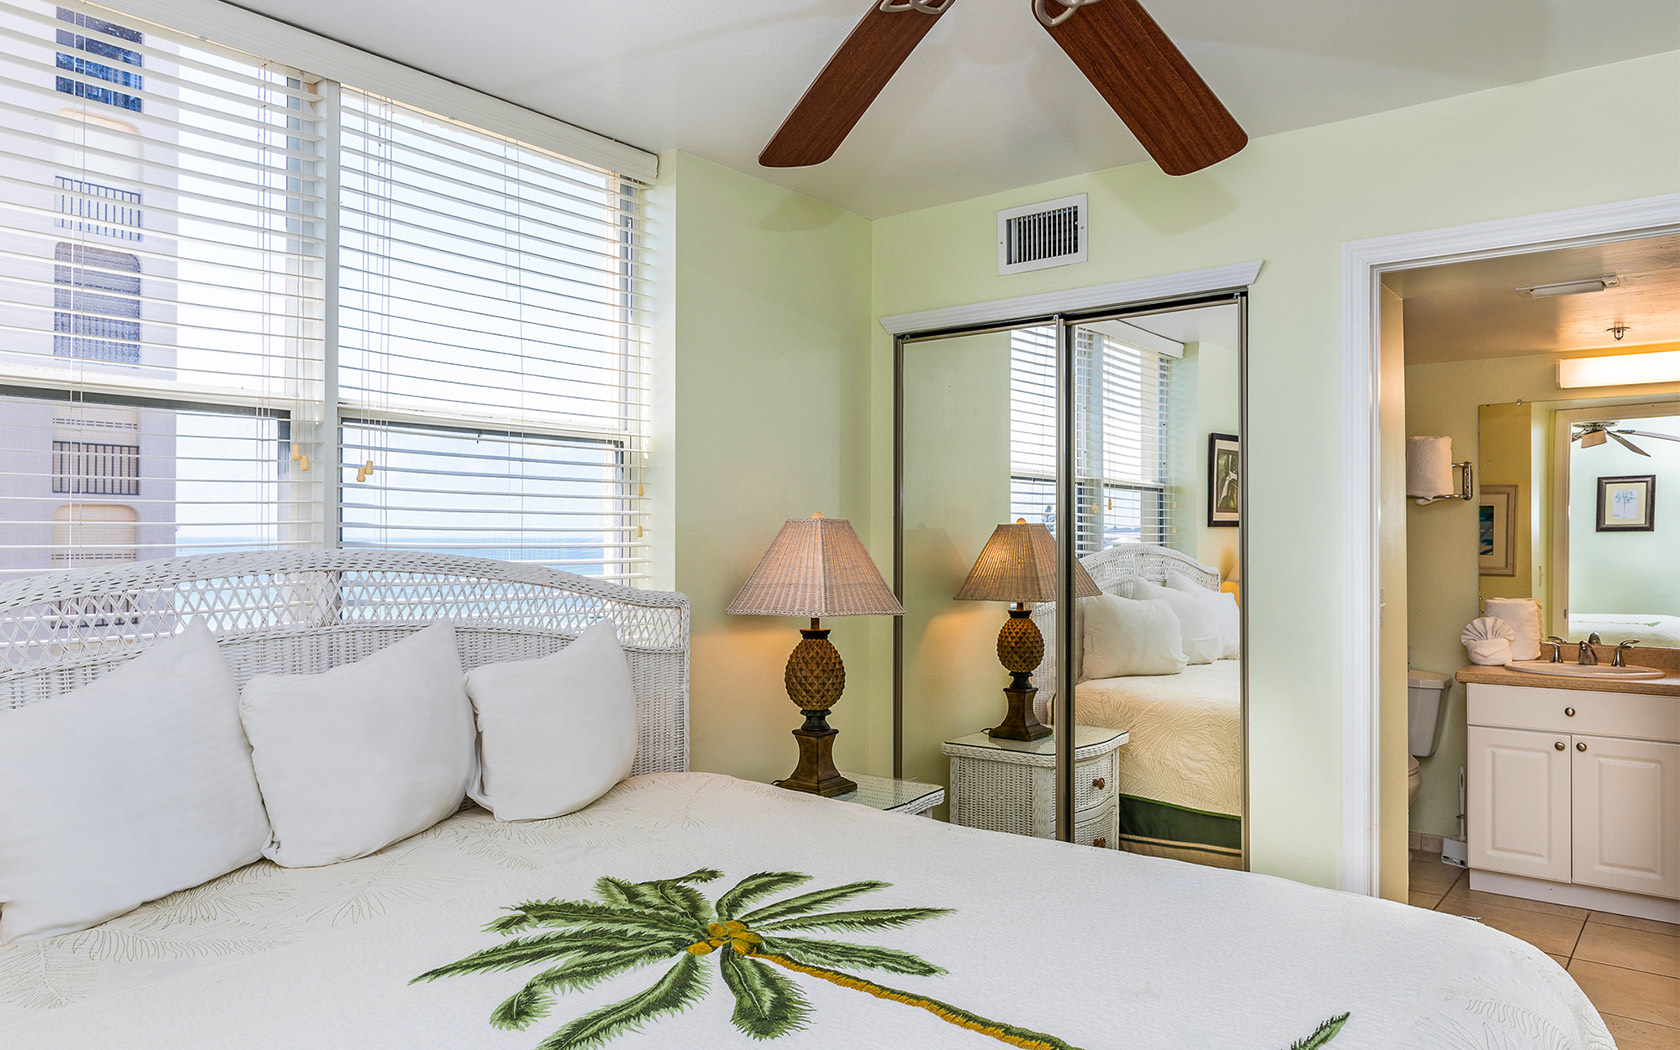 Casa Play Resort Gulfview Studio bed with palm frond bedspread